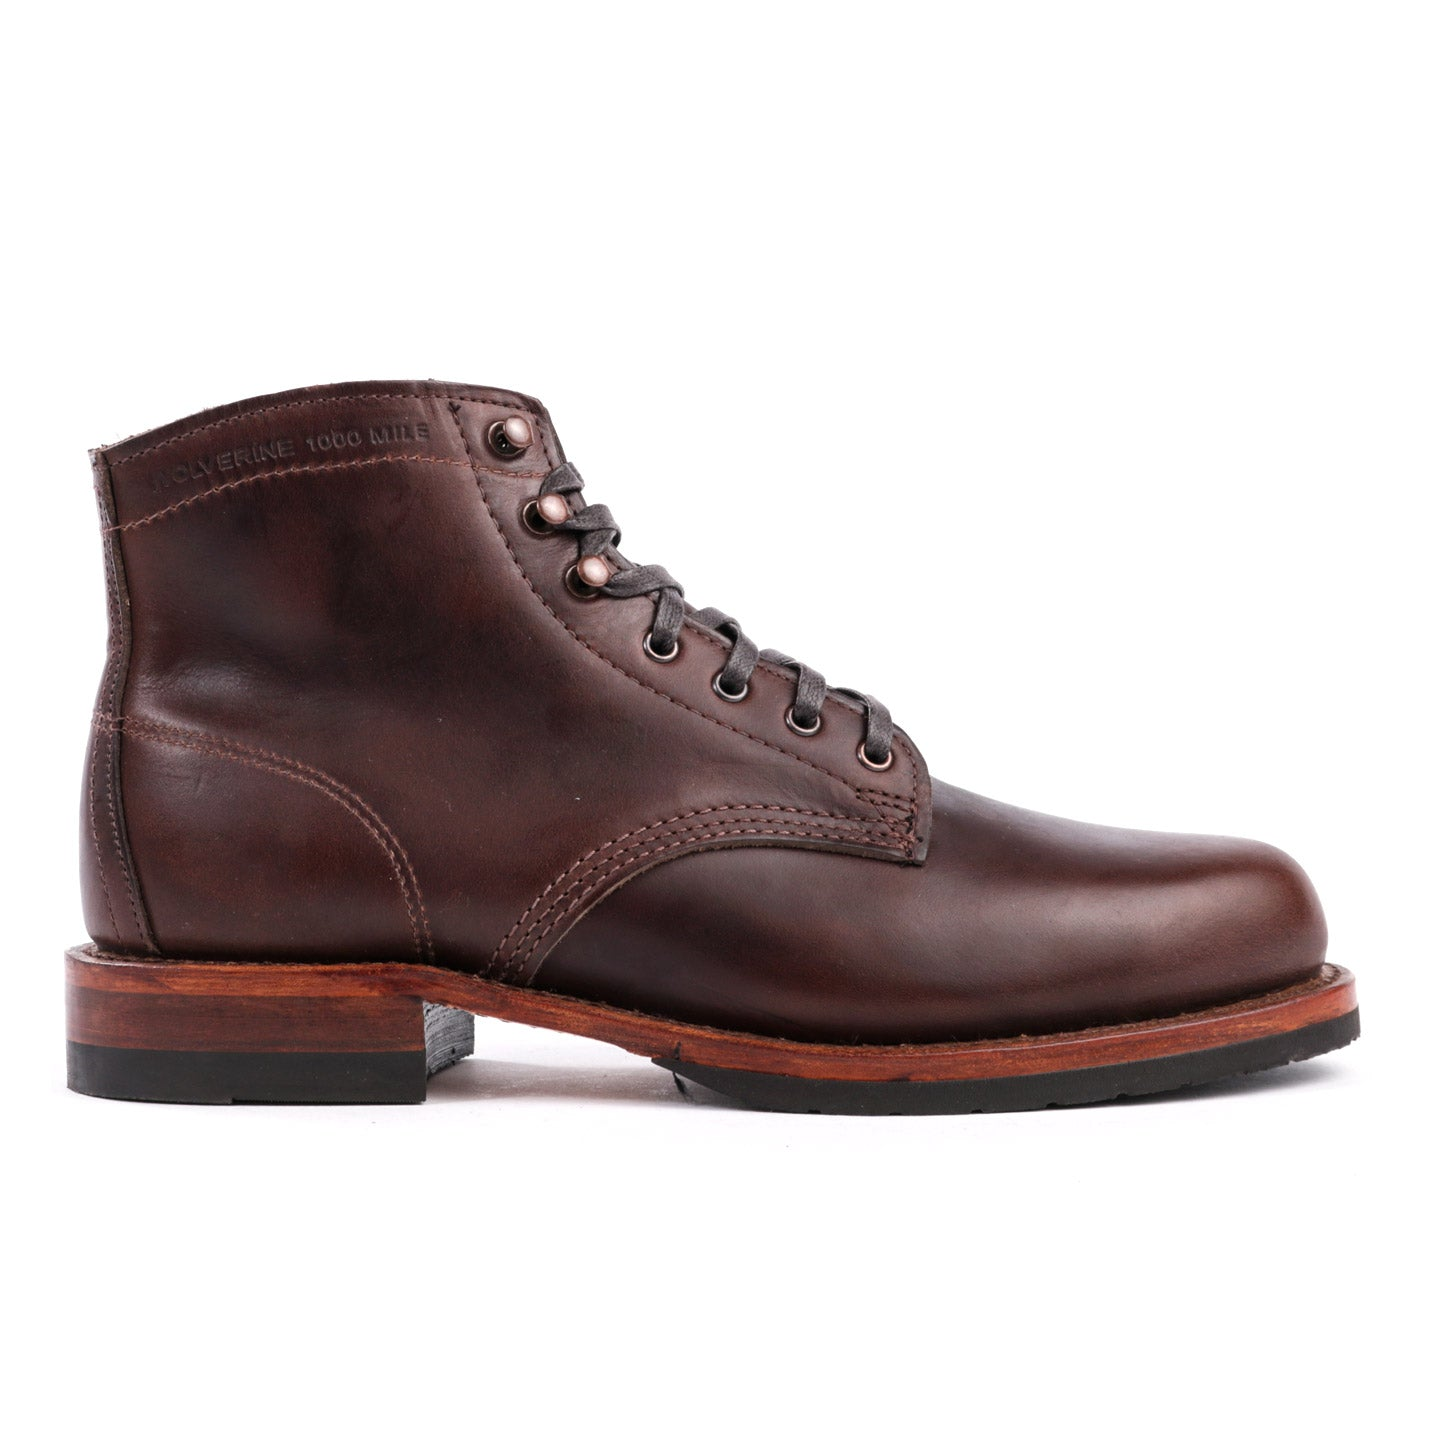 WOLVERINE 1000 MILE TODAY EVANS BOOT DARK BROWN